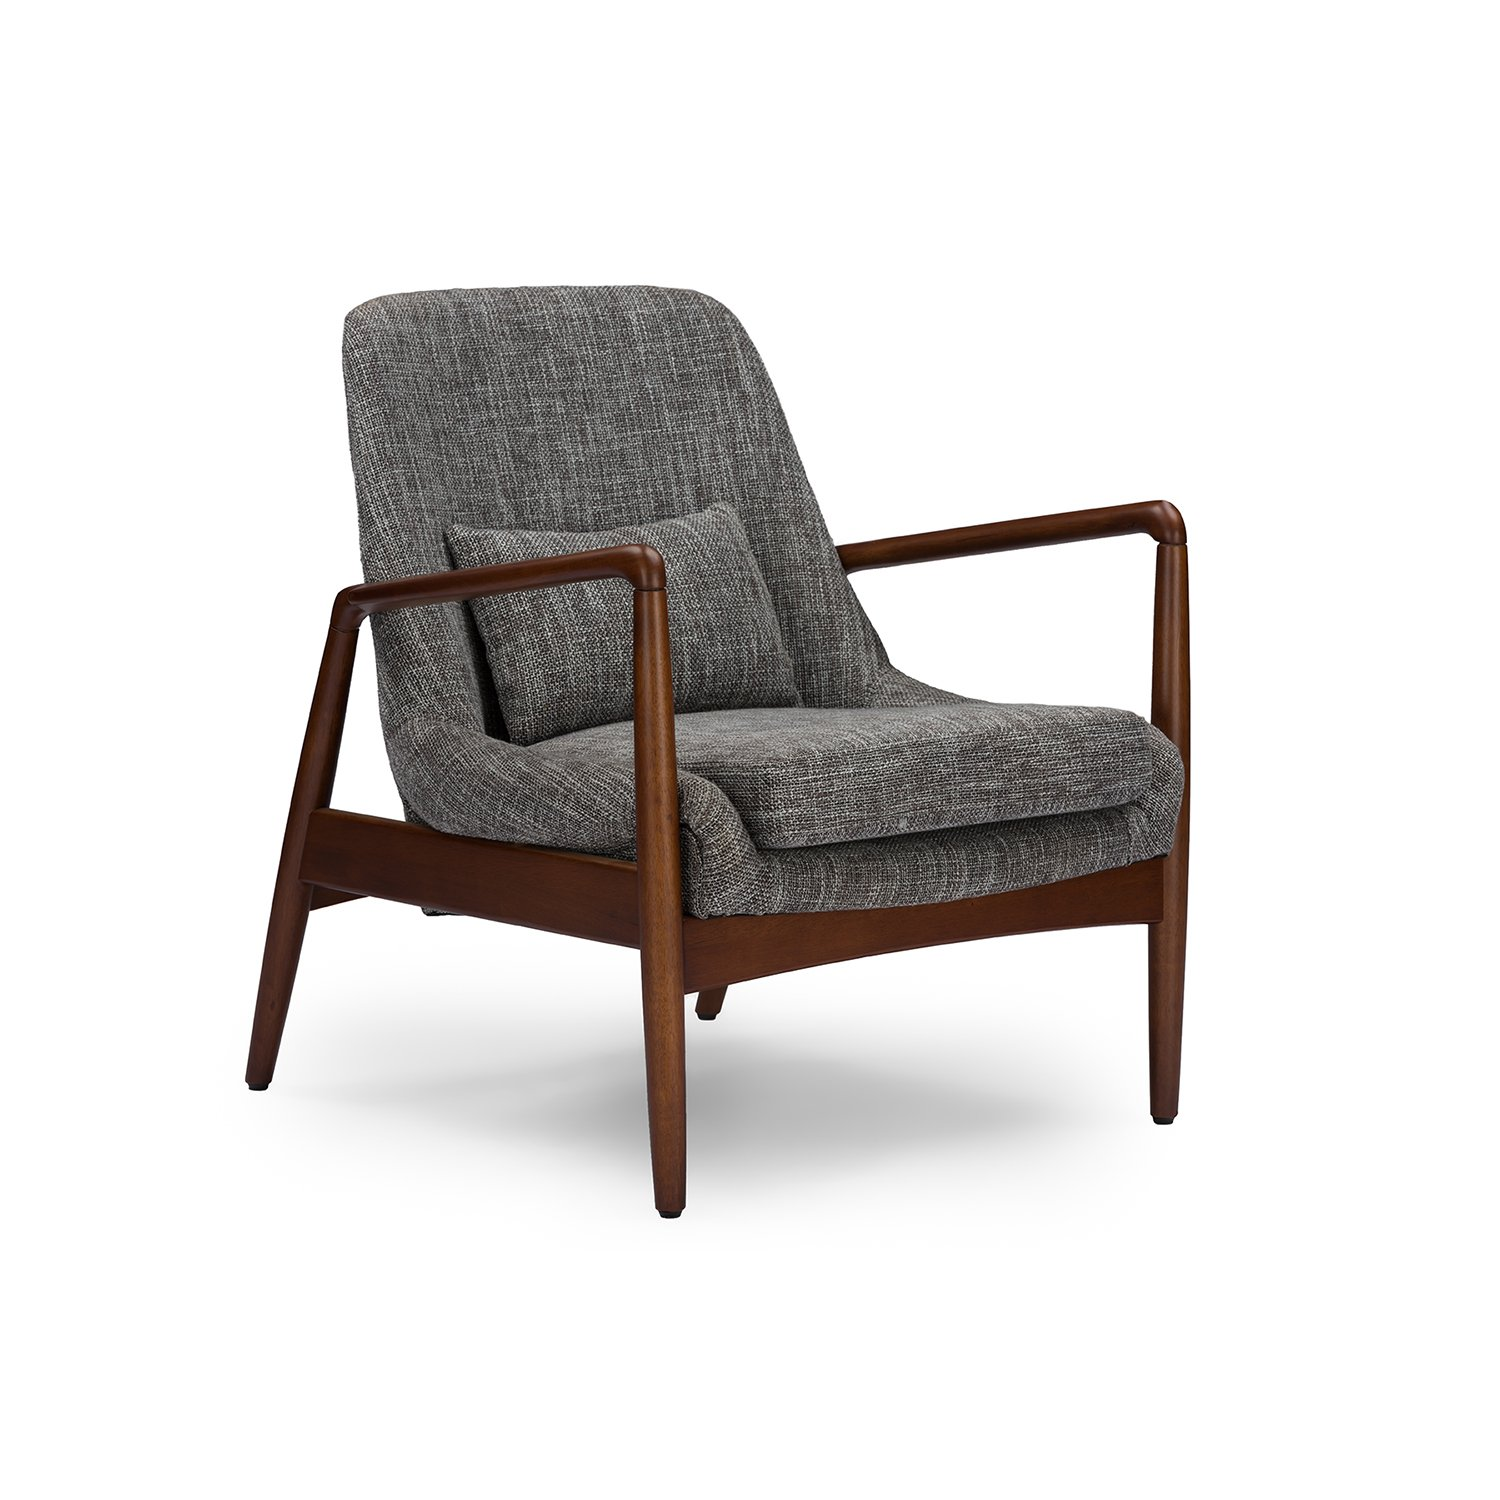 Superieur Amazon.com   Wholesale Interiors Baxton Studio Carter Mid Century Modern  Retro Fabric Upholstered Leisure Accent Chair In Walnut Wood Frame, Large,  ...